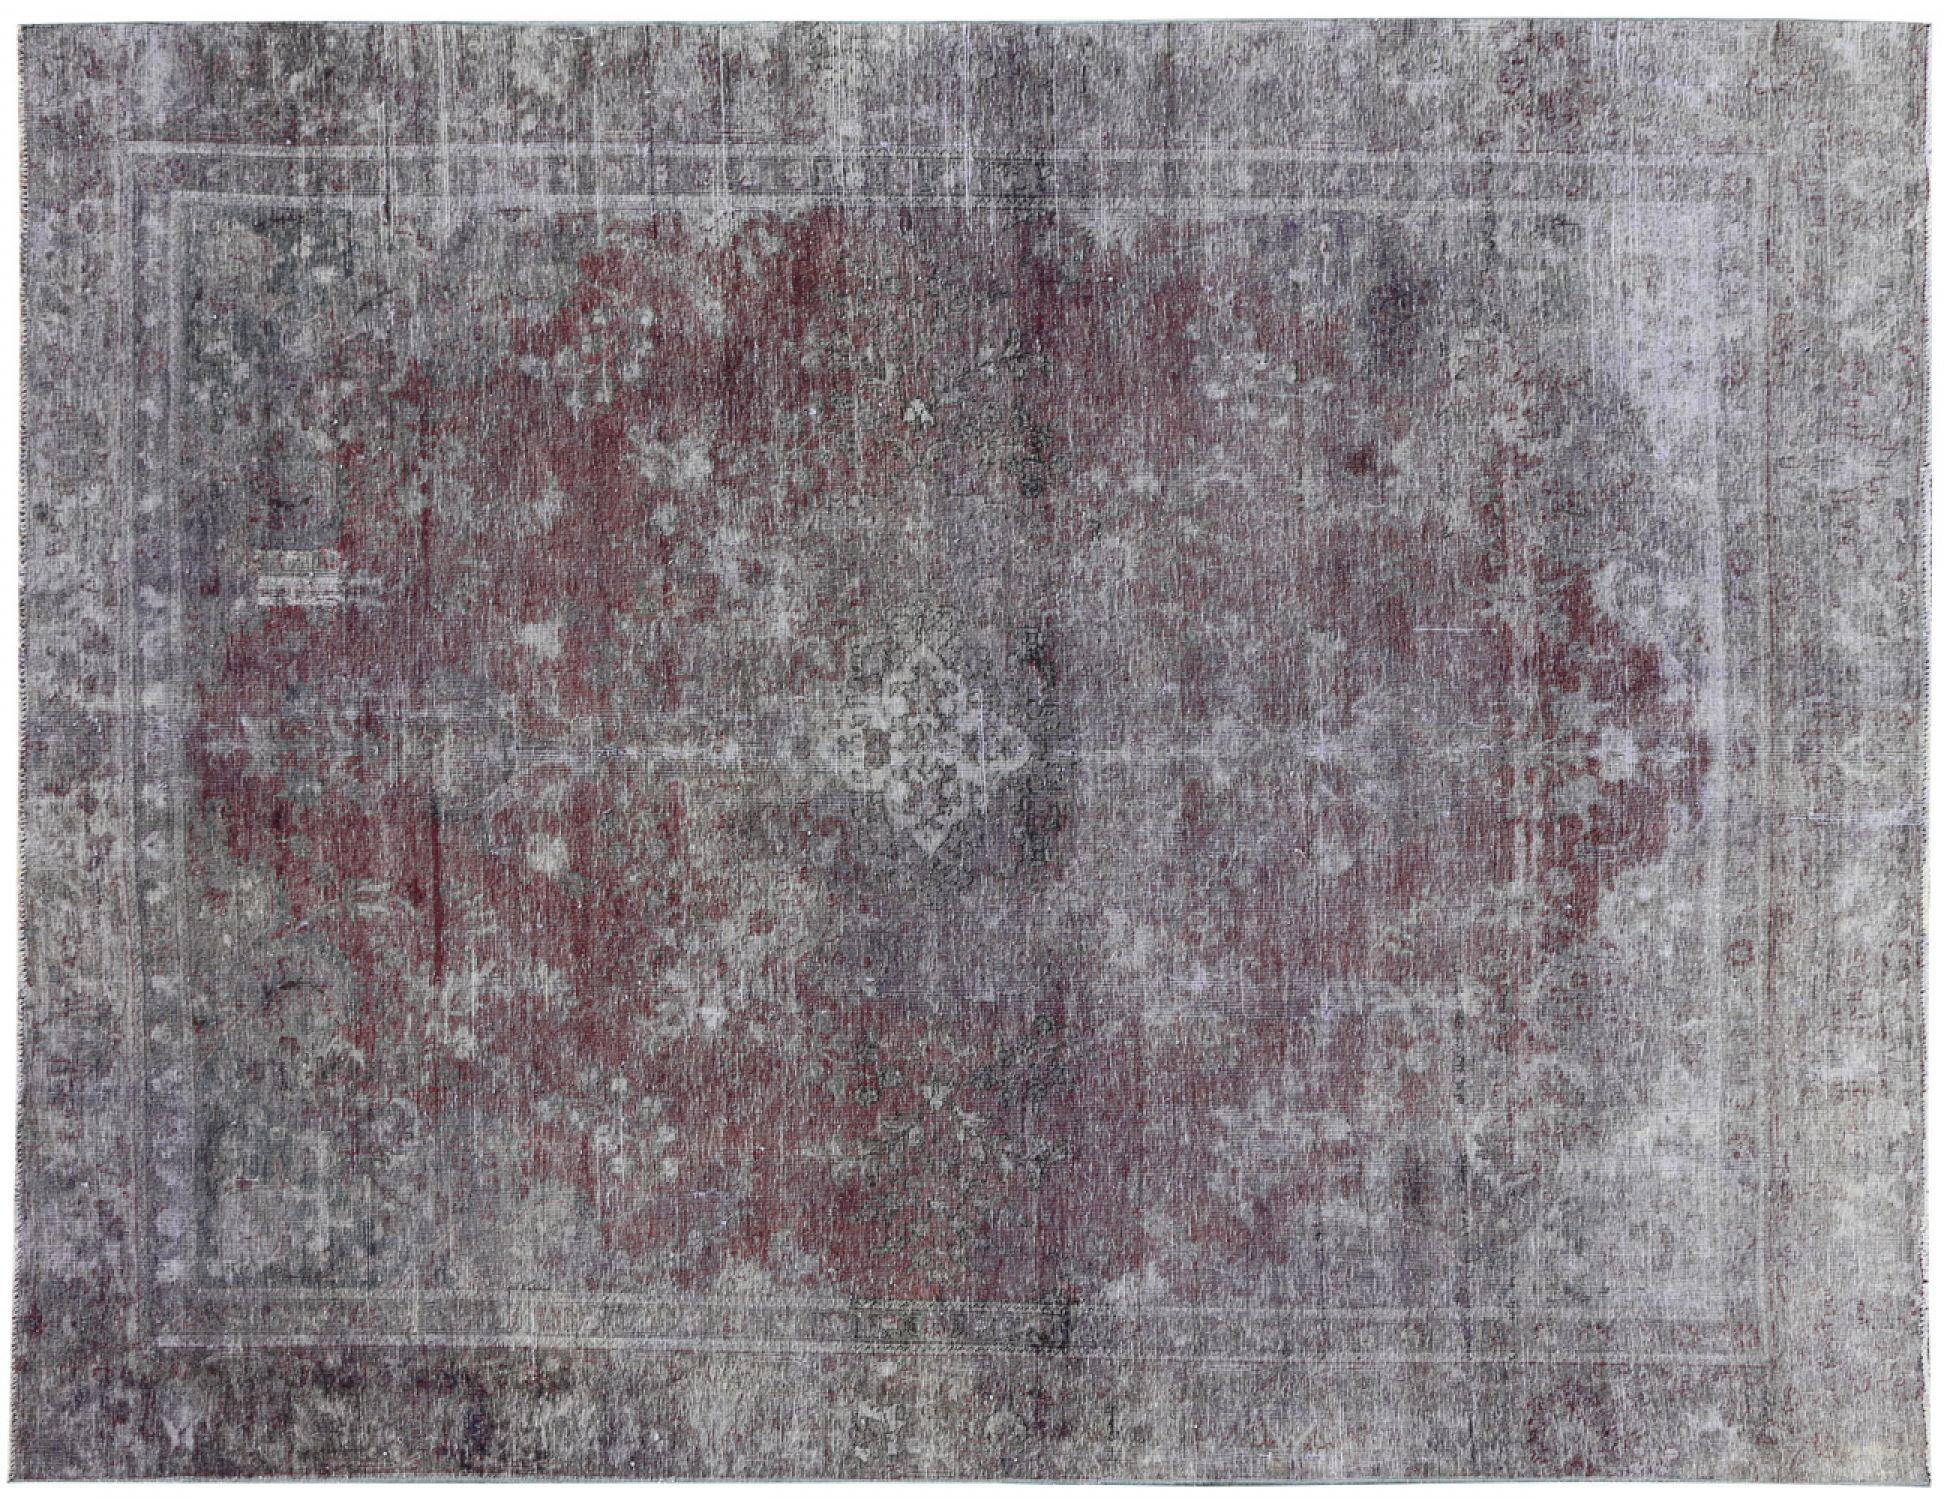 Vintage Carpet  grey <br/>342 x 268 cm